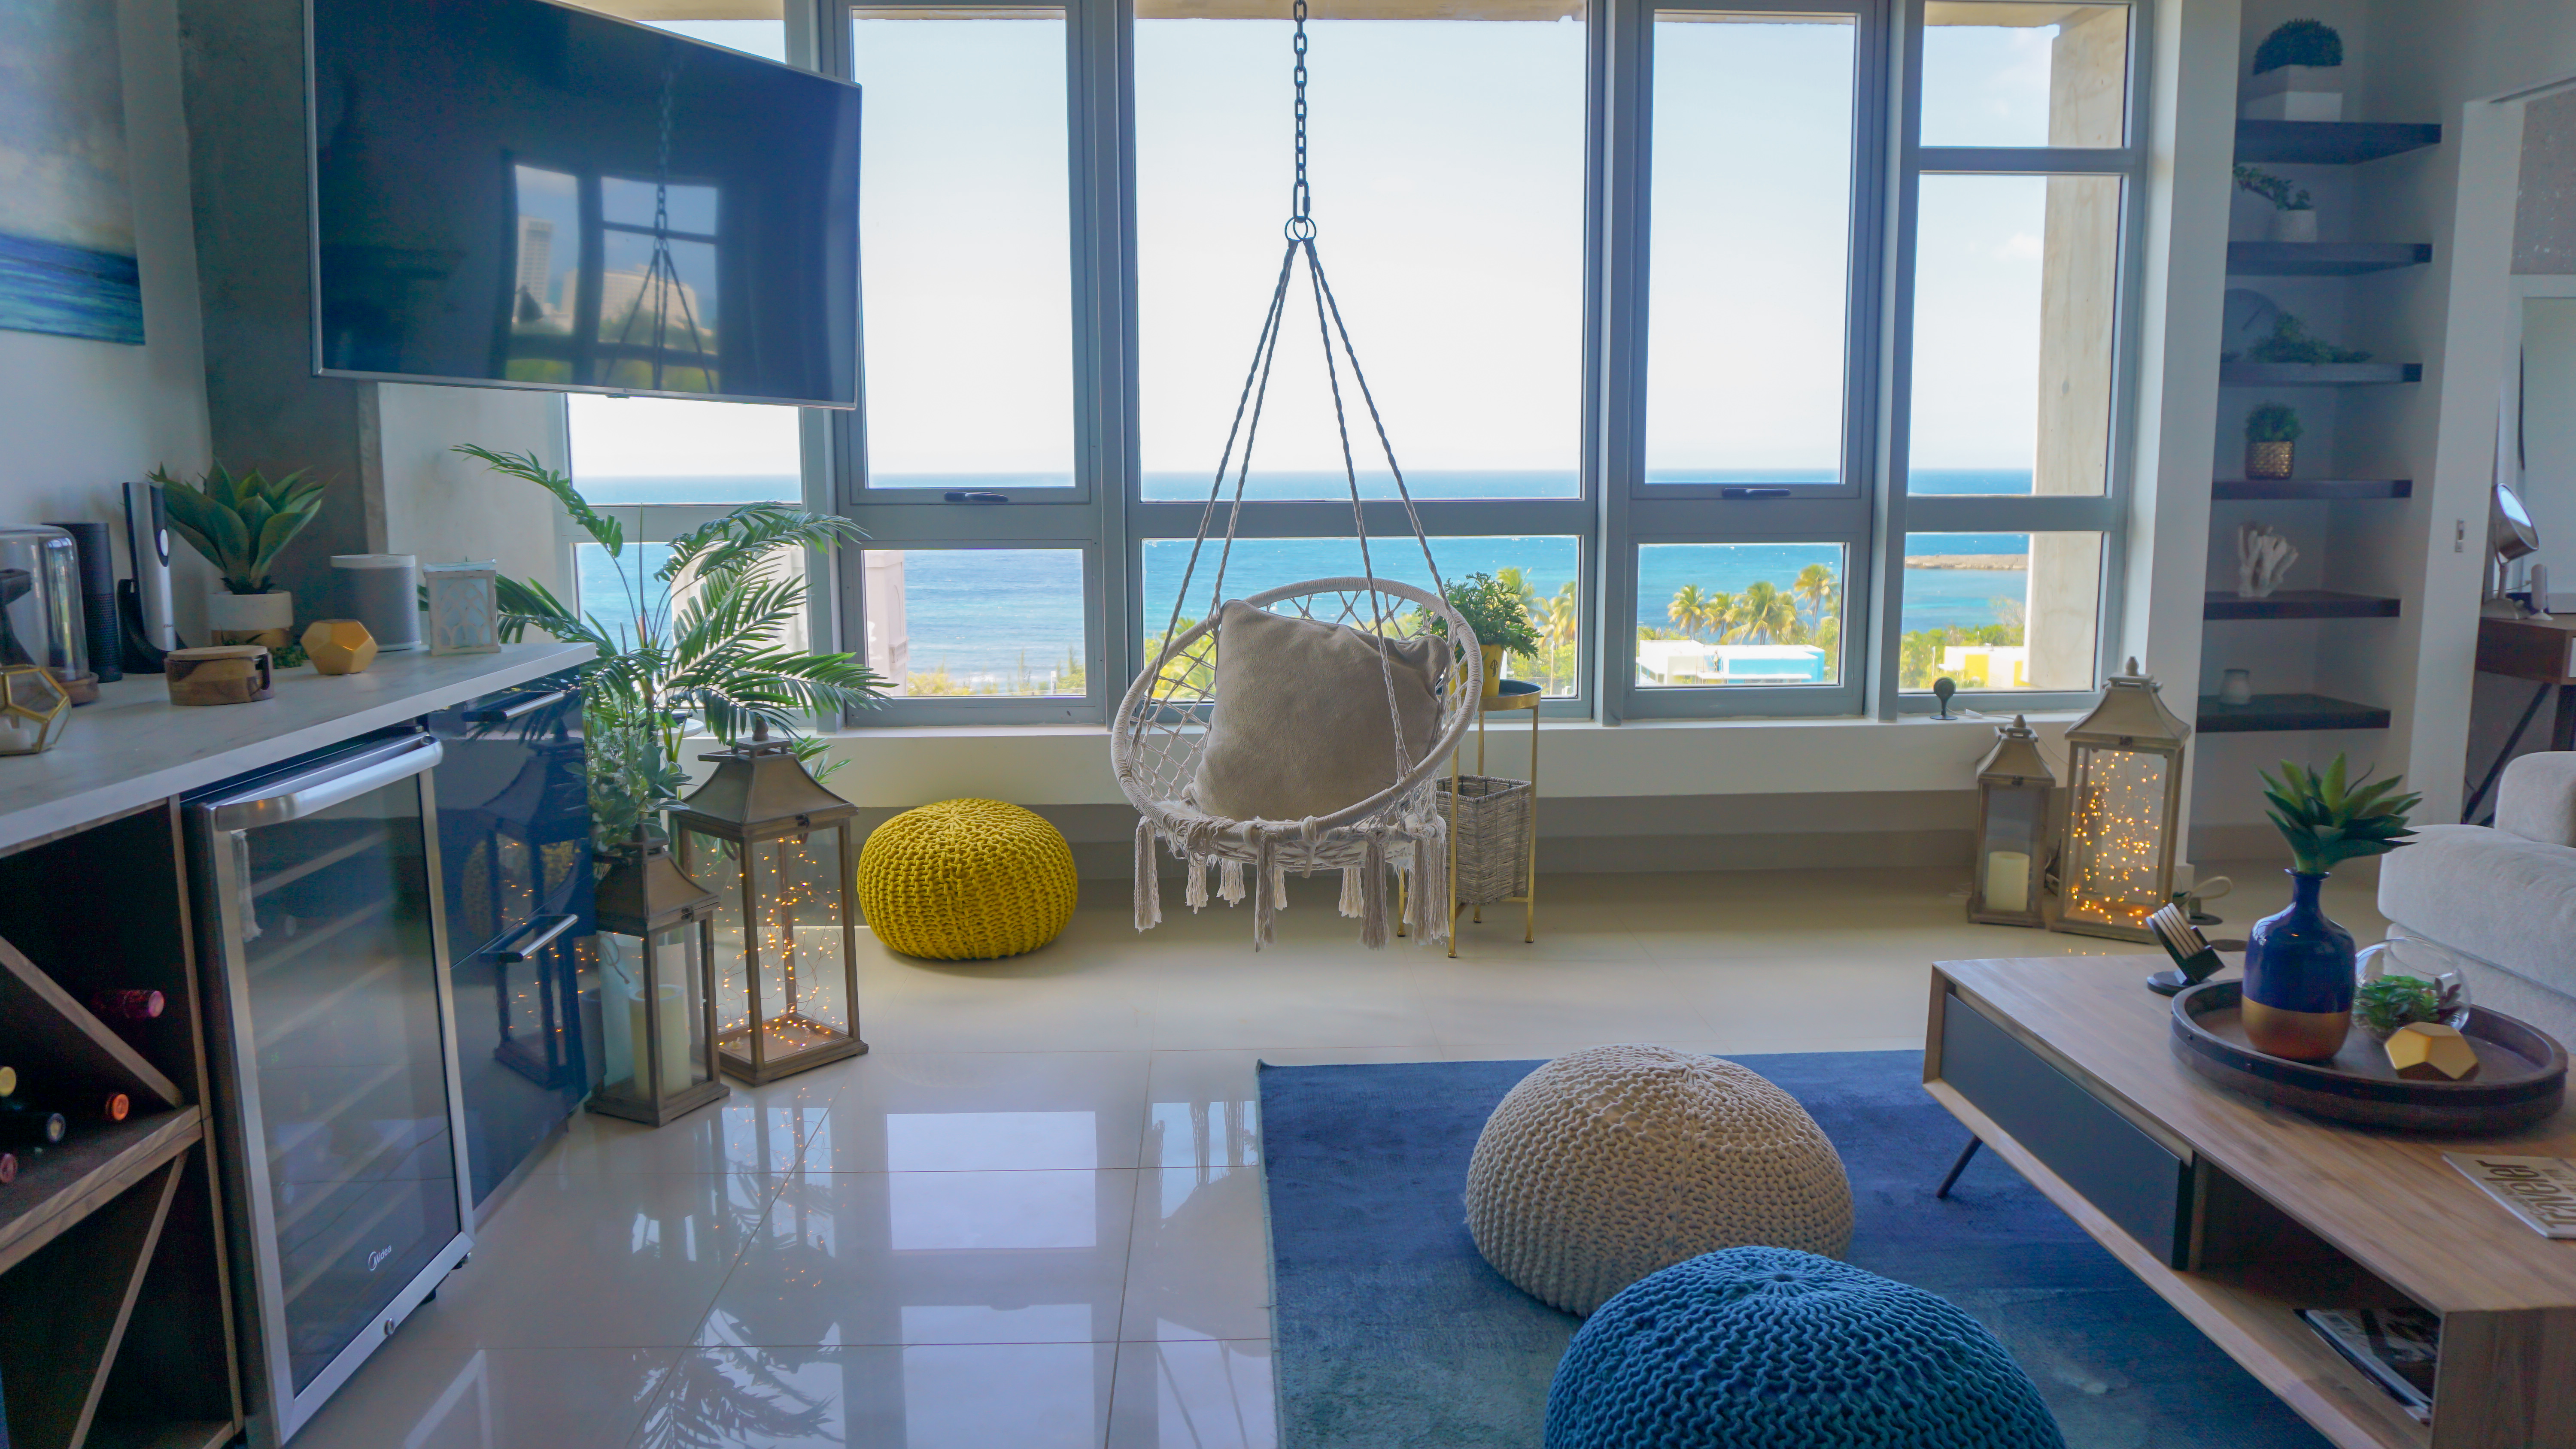 Ocean Views Atlantis San Juan | San Juan Puerto Rico | Plentiful Views at Atlantis | Luxury Vacation Rental